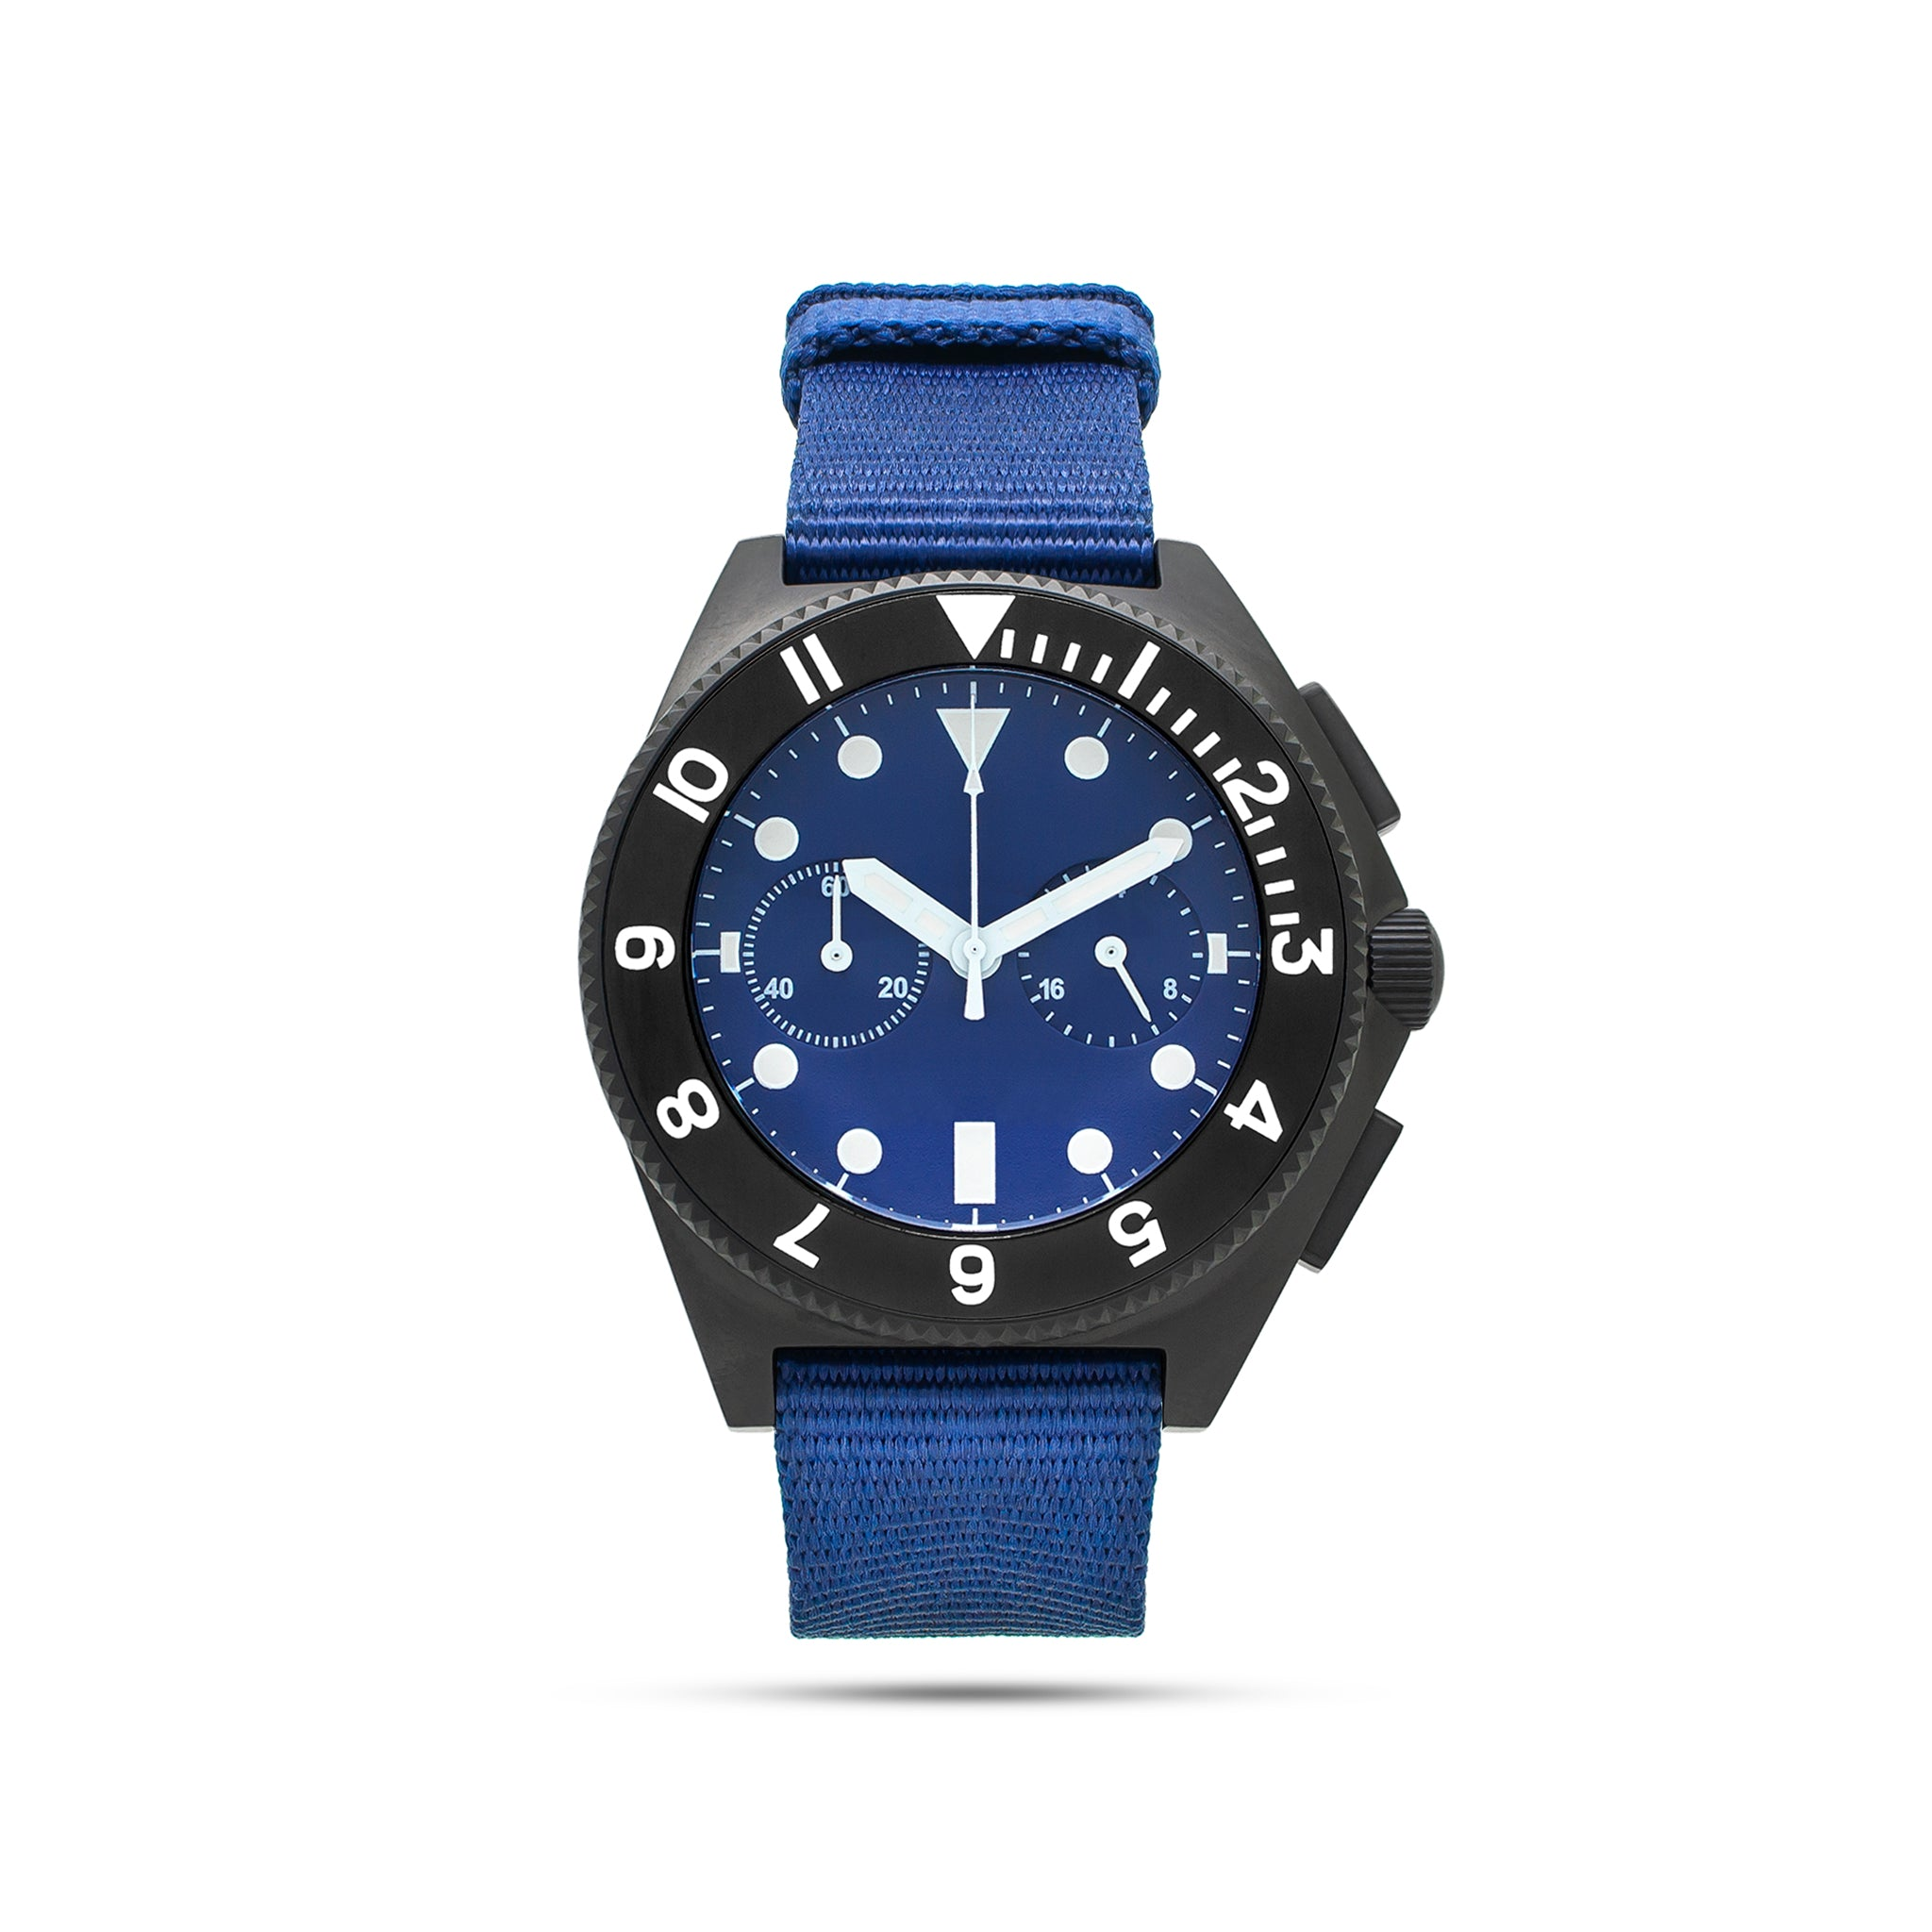 mens black and blue watch front view